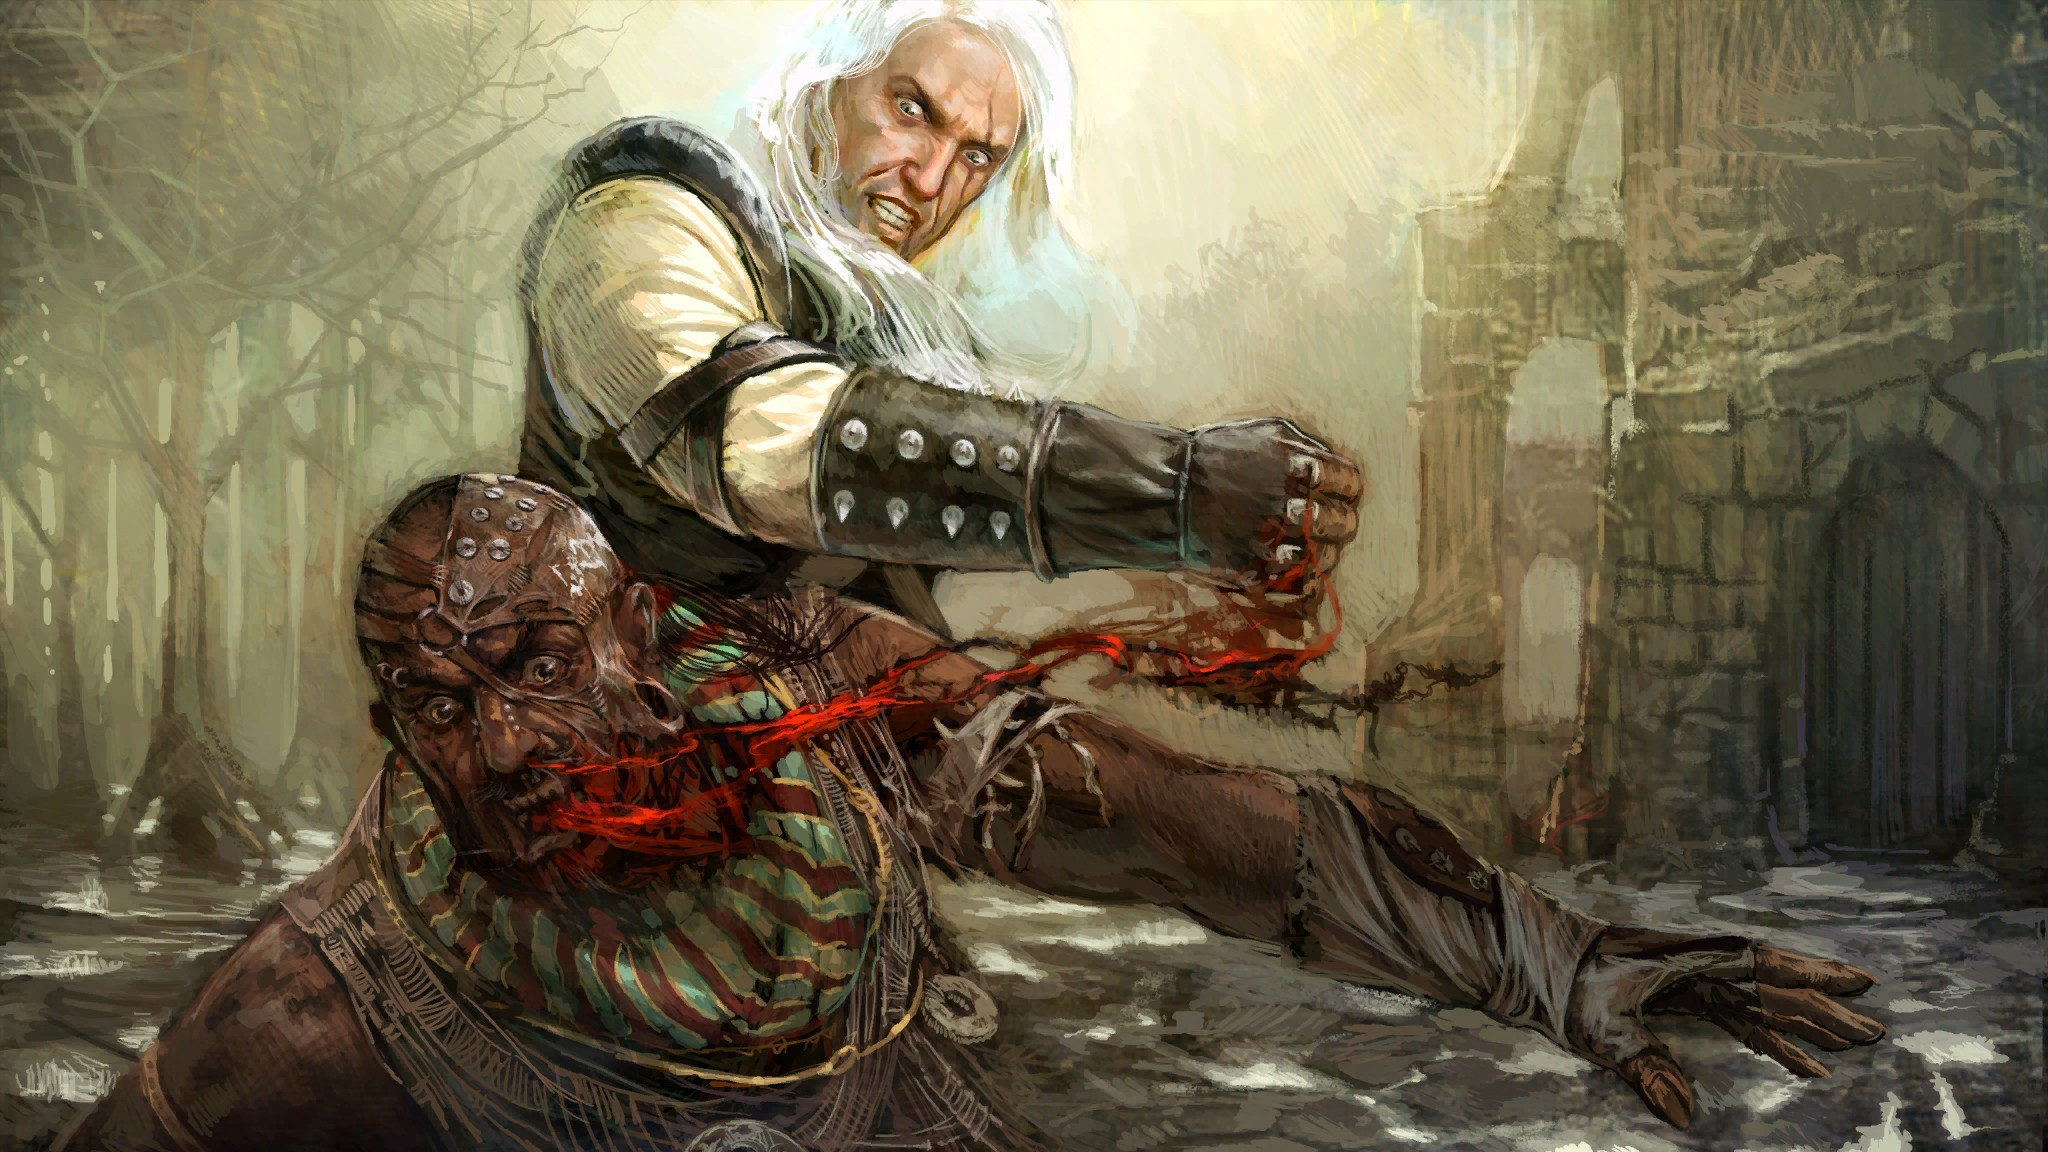 Art - Witcher, the Арт